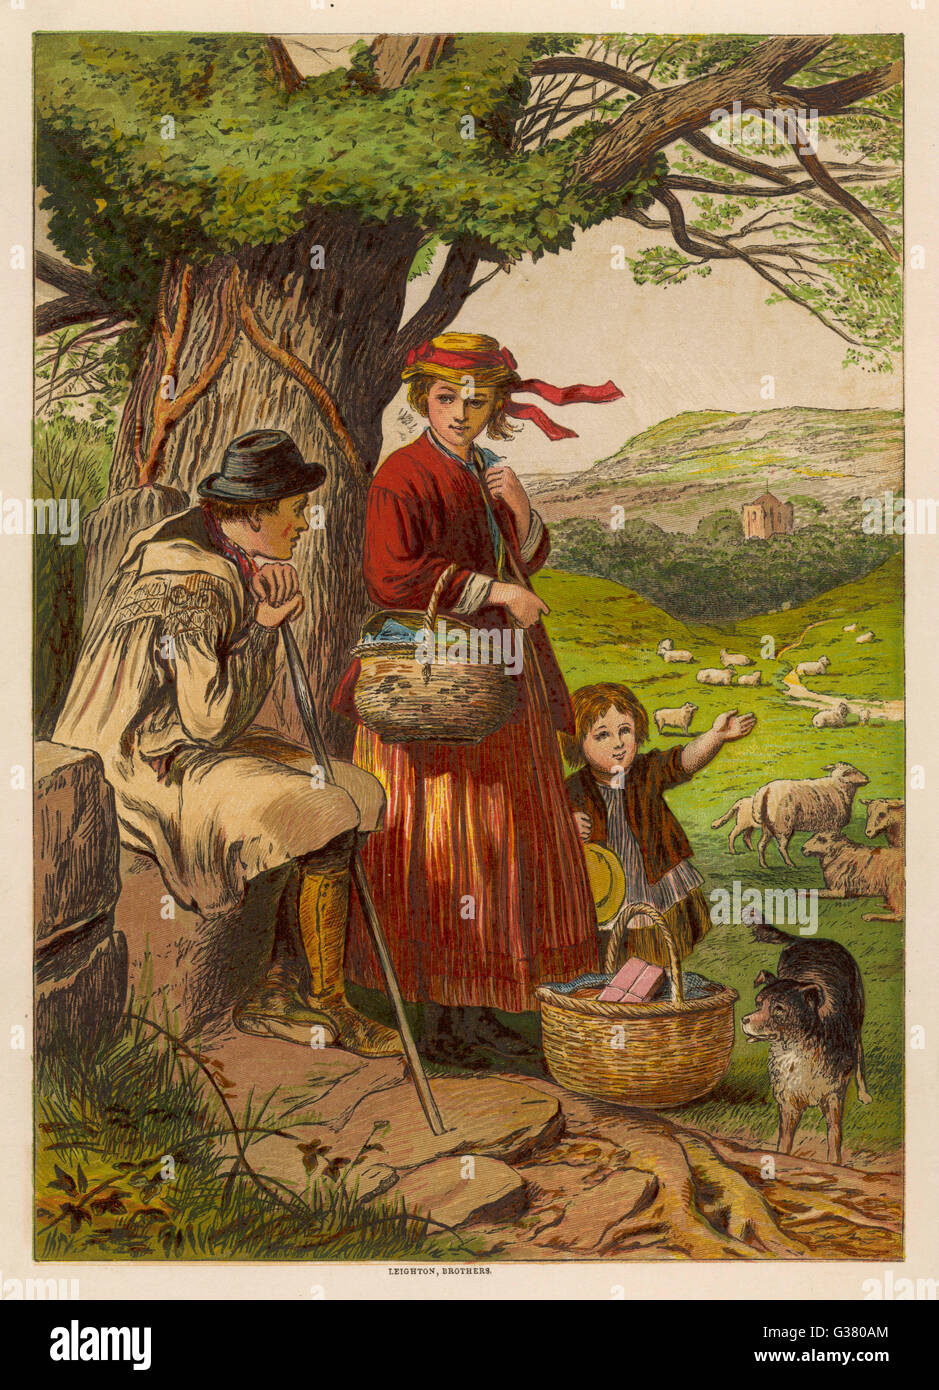 Country folk going to market          Date: 1869 - Stock Image